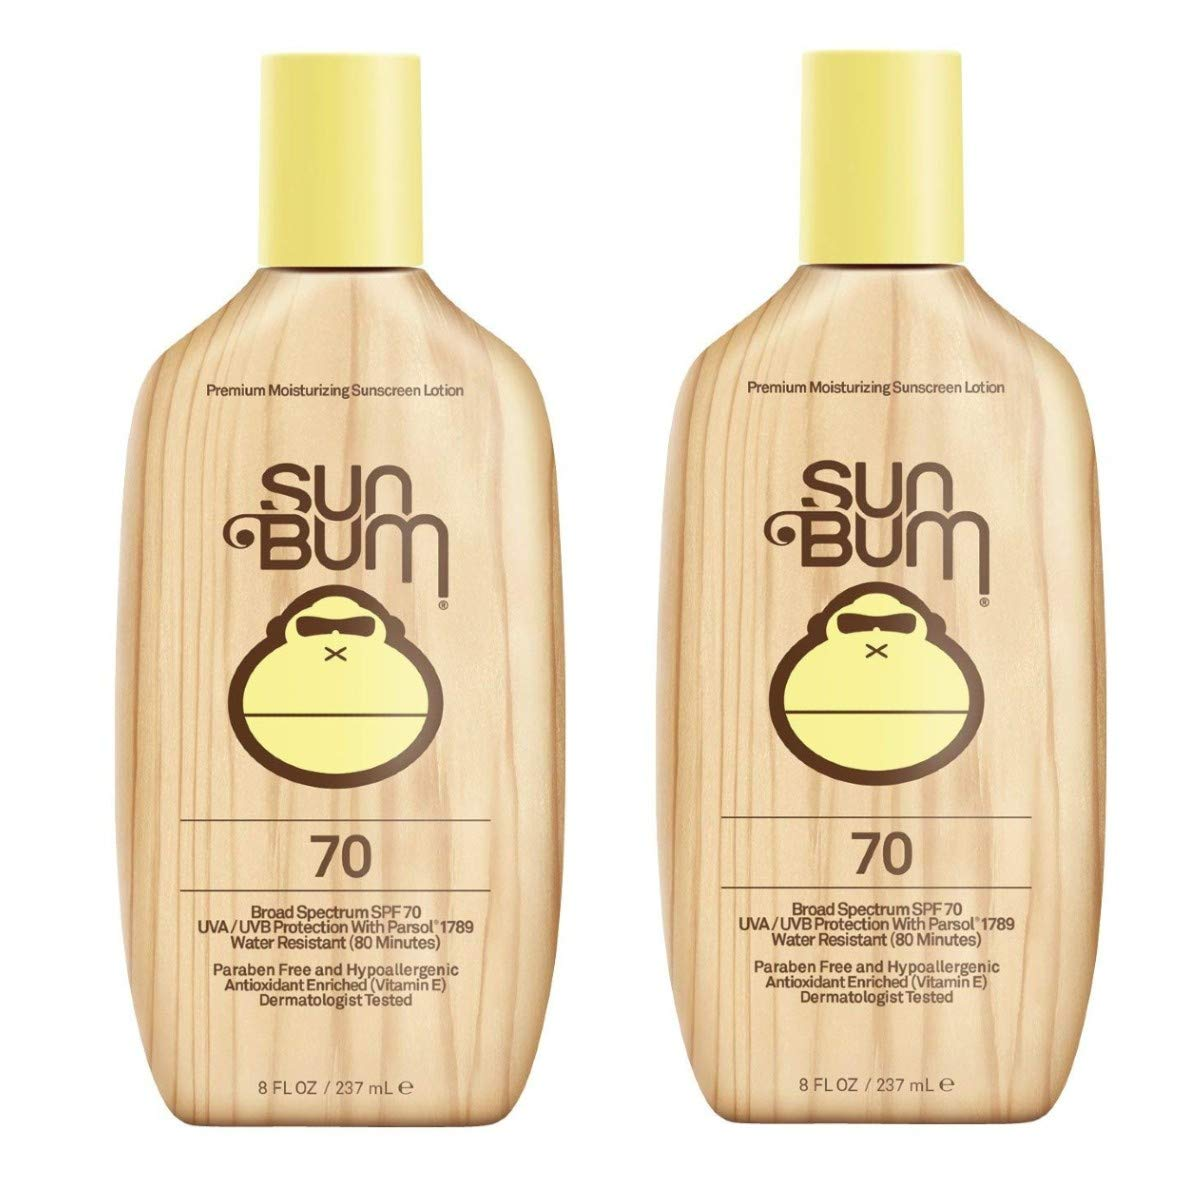 The Sun Bum Original Moisturizing Sunscreen Lotion travel product recommended by Kelsey Duran on Lifney.